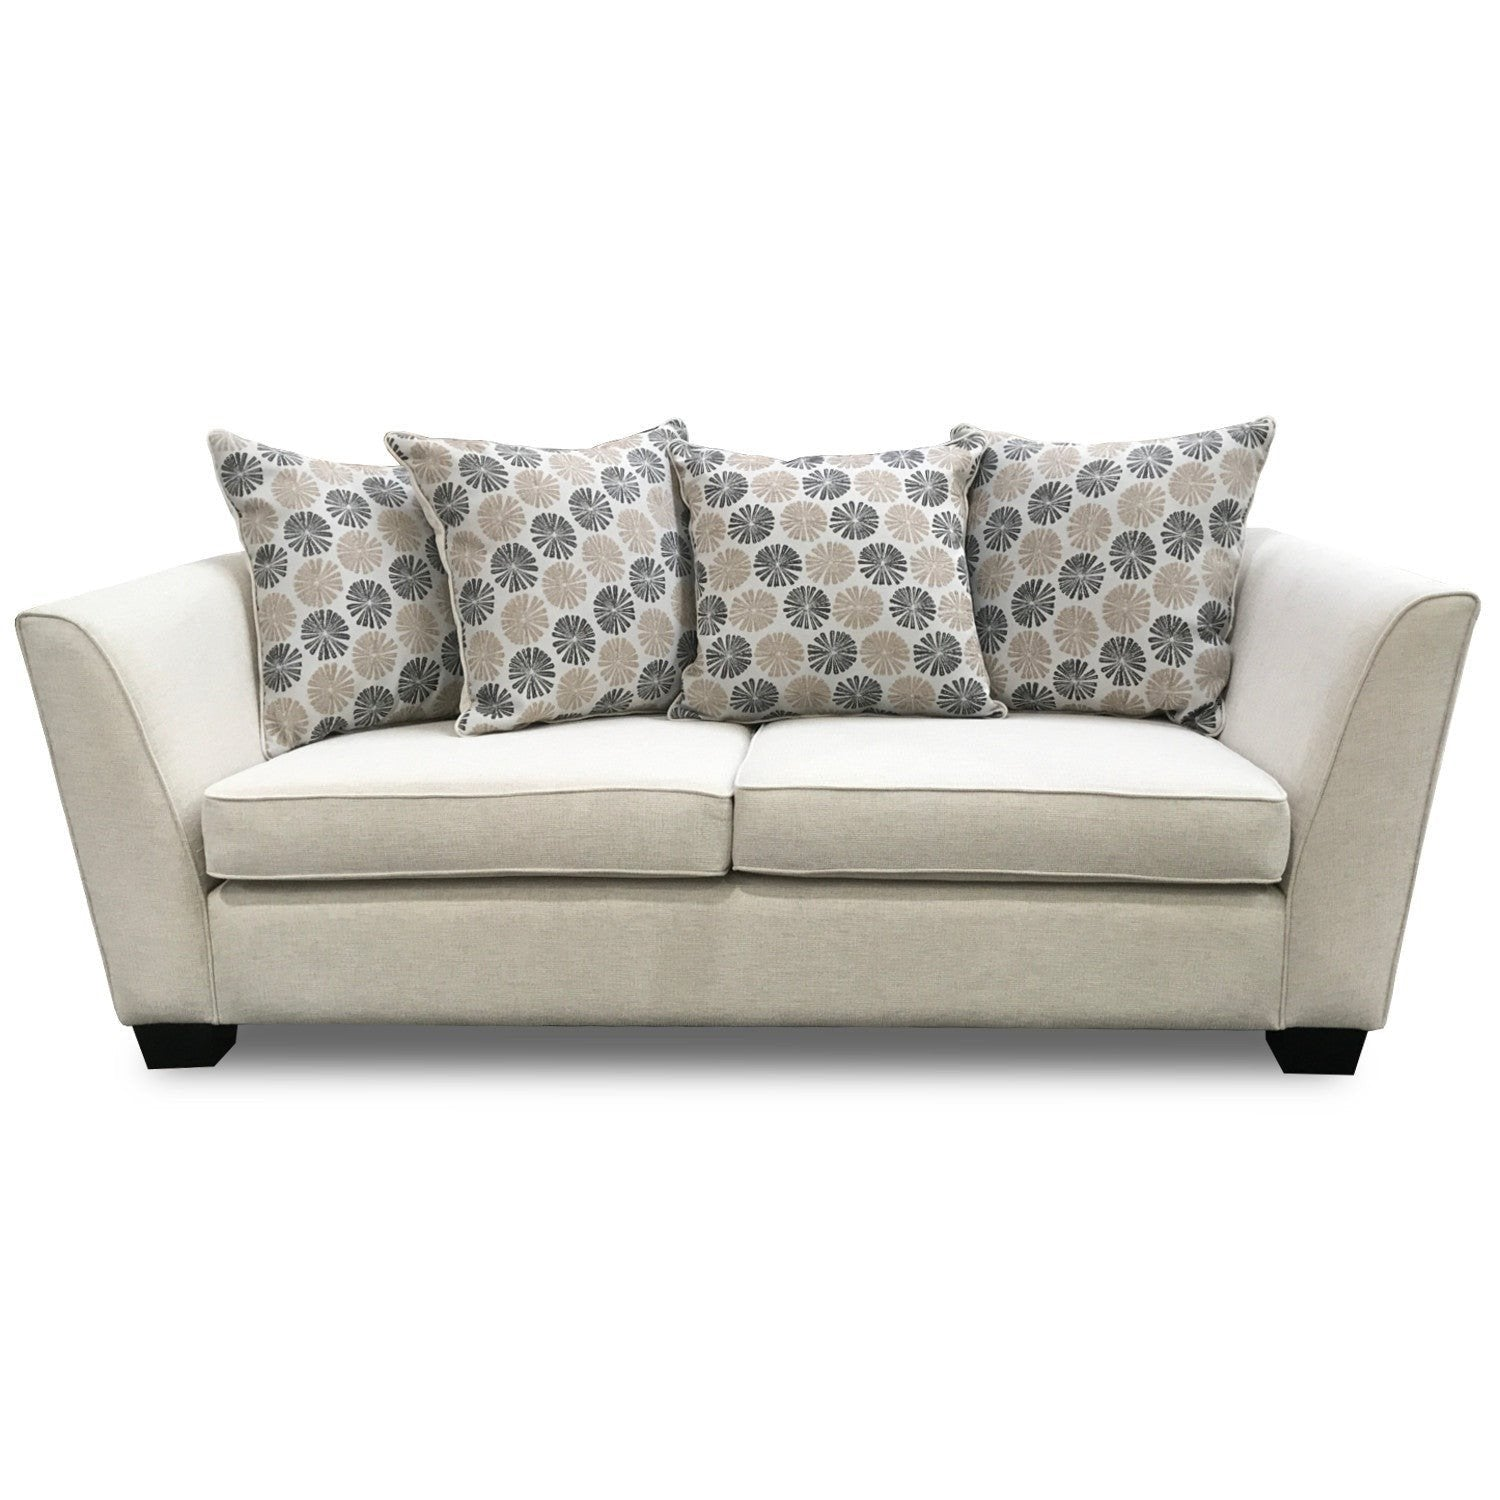 Chanel Lounge Suite - 3 Seater & 2.5 Seater